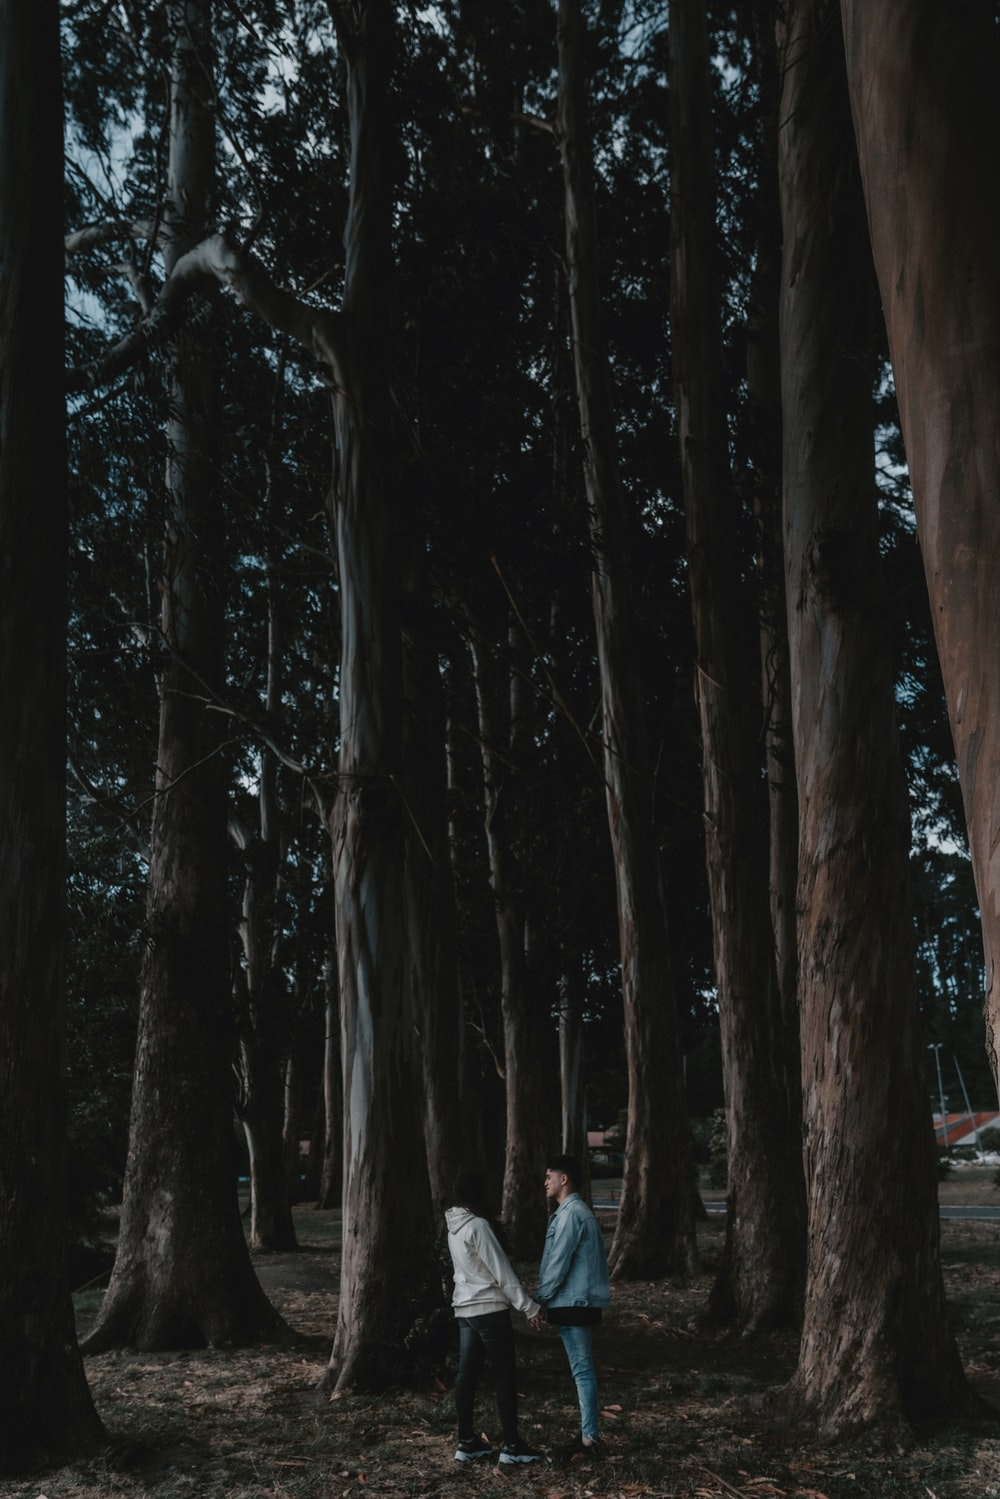 people walking on pathway between trees during daytime